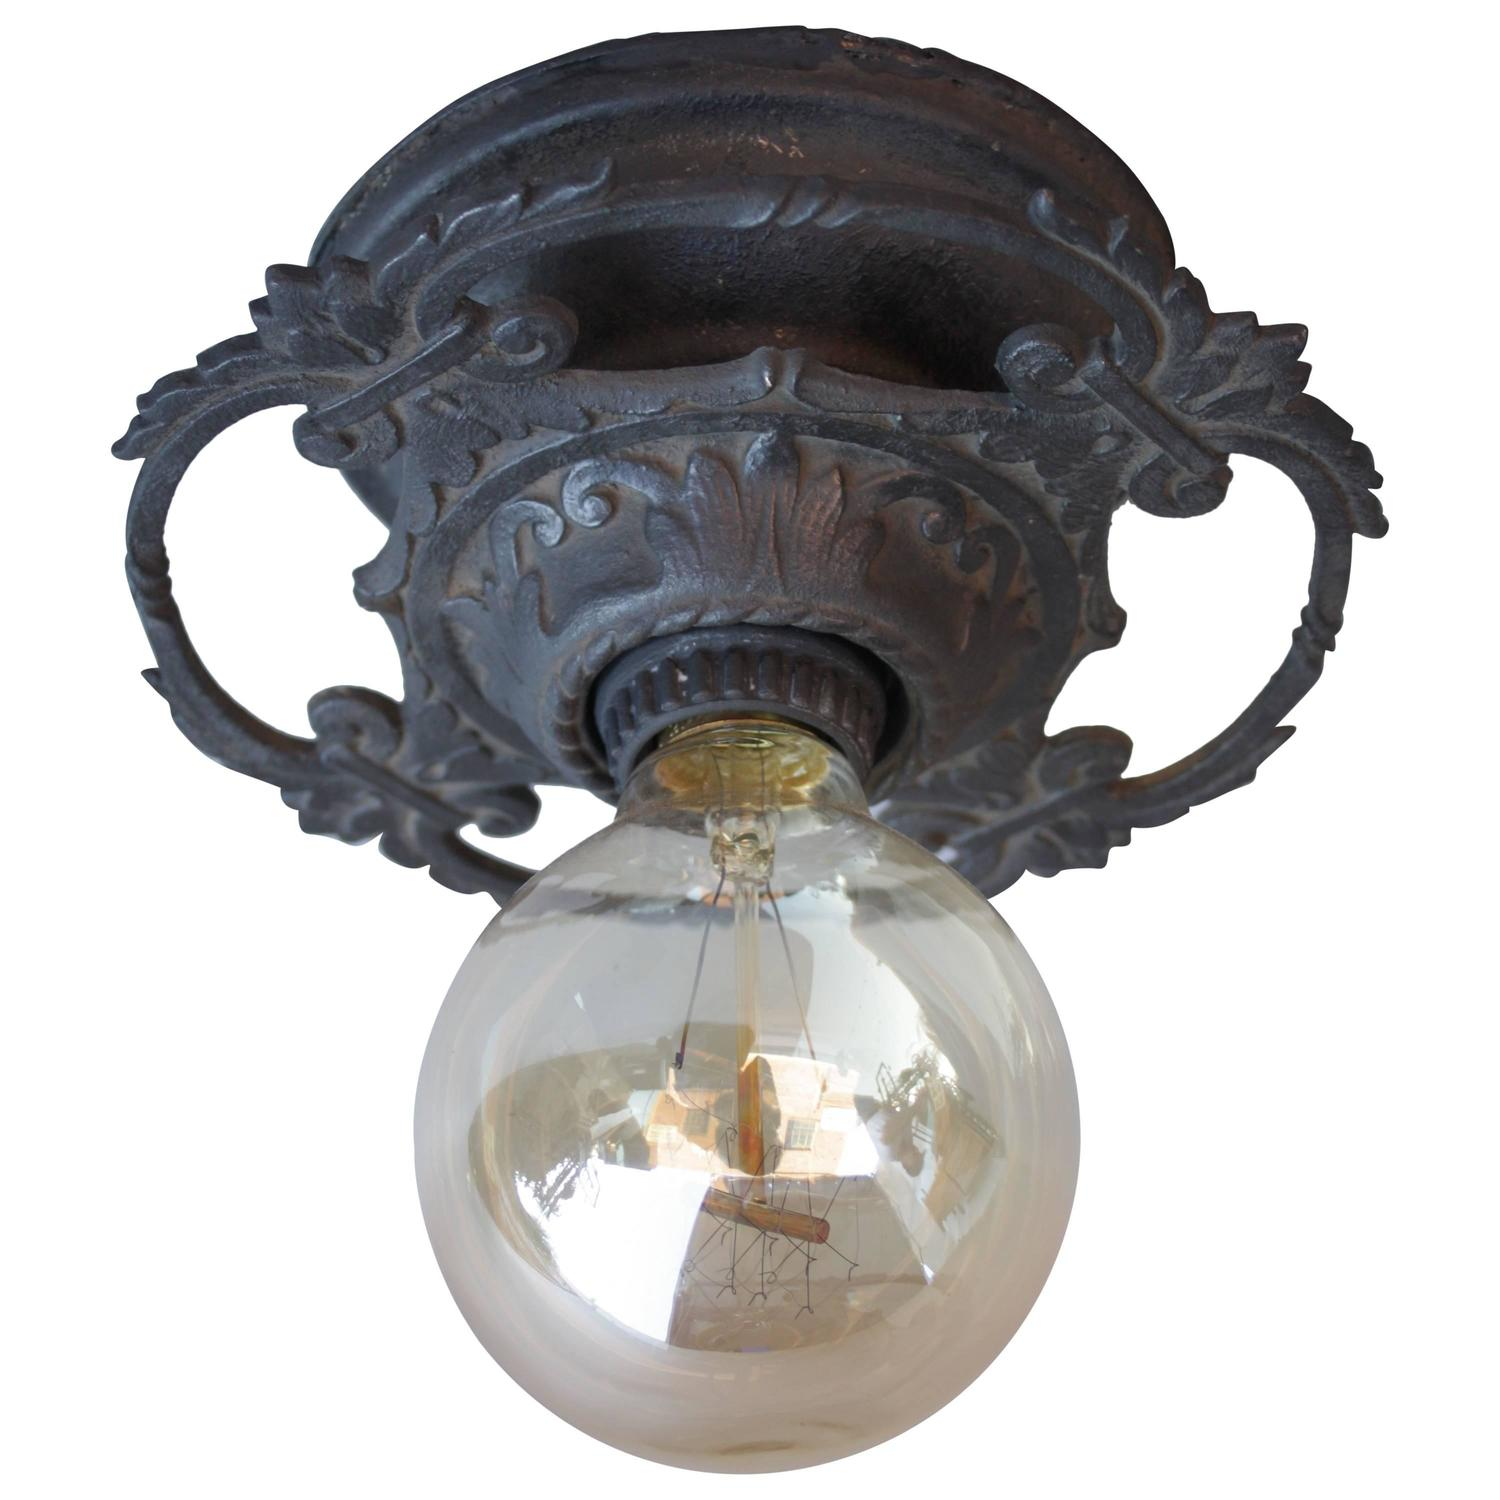 1920s spanish revival flush mount light fixture at 1stdibs for Spanish revival lighting fixtures